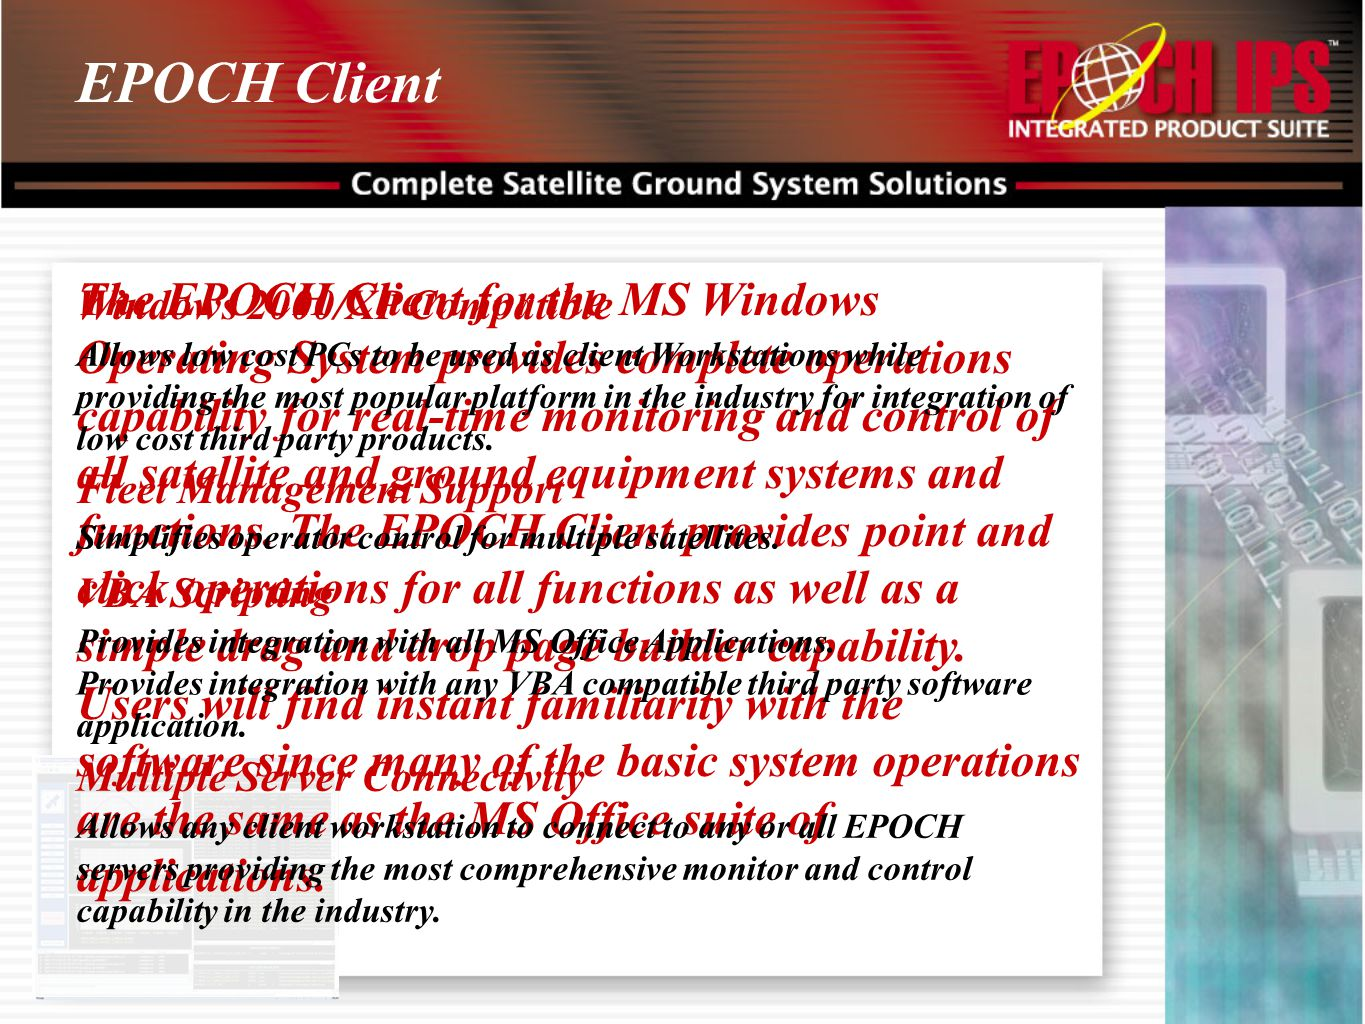 EPOCH Client The EPOCH Client for the MS Windows Operating System provides complete operations capability for real-time monitoring and control of all